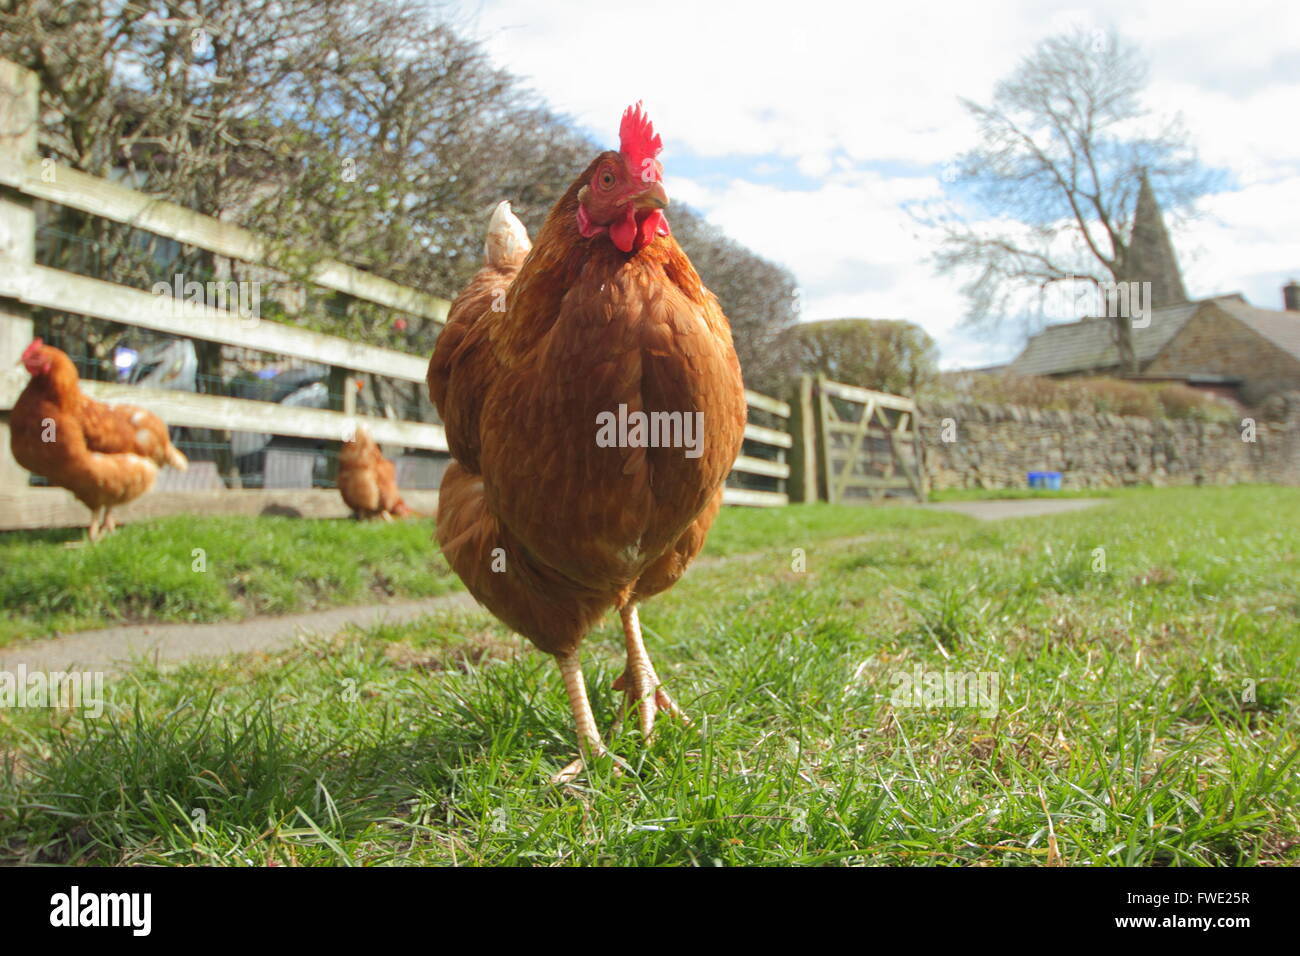 A free range chicken roaming outside in a grass field in the village of Hope, Peak District National Park, Derbyshire - Stock Image